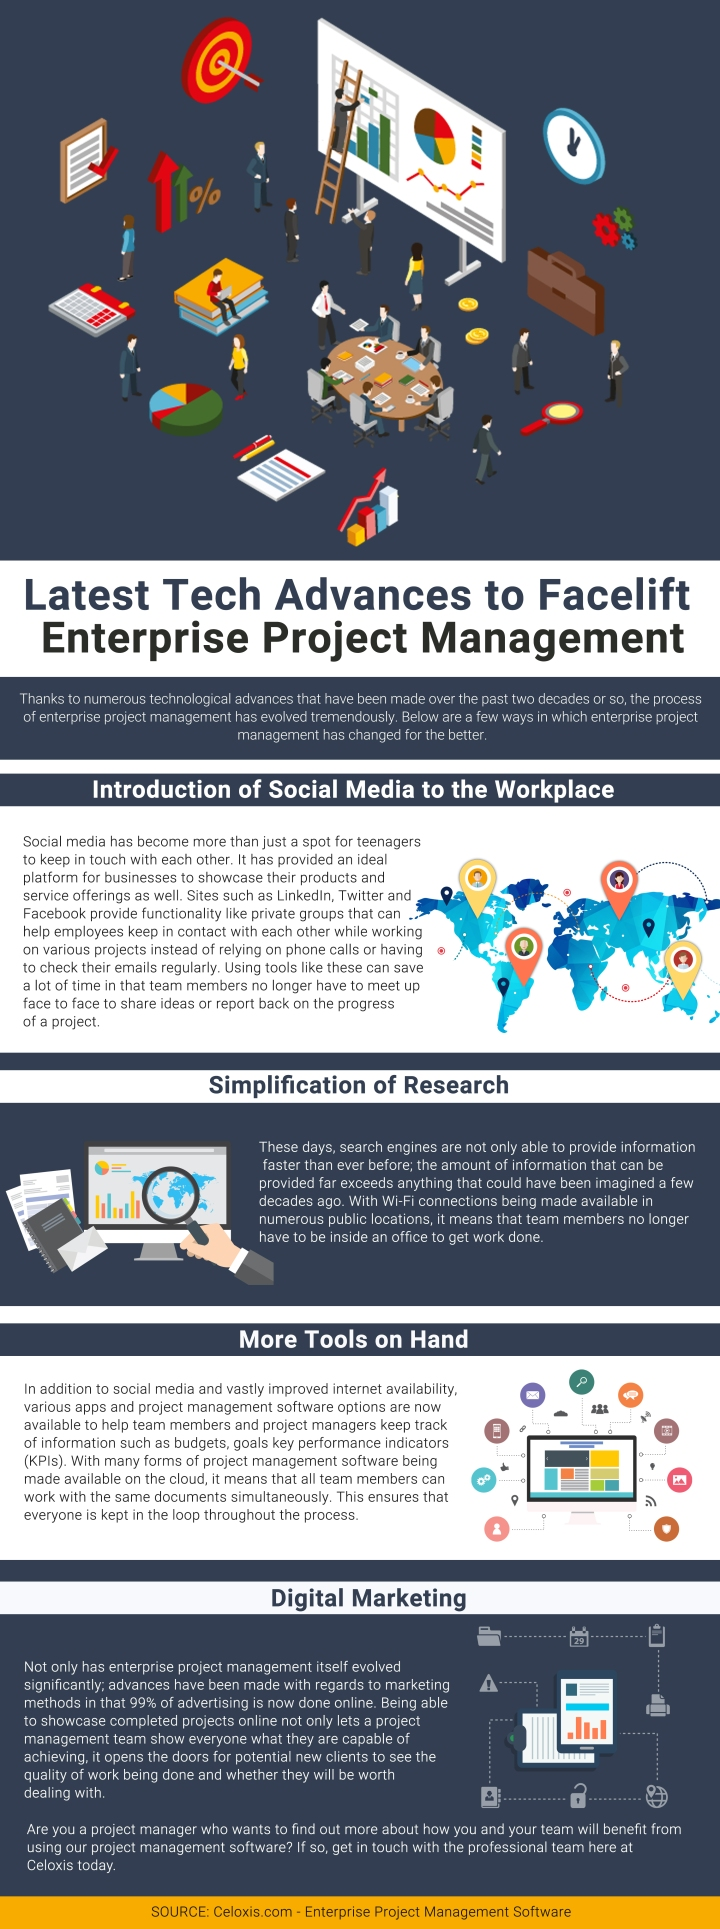 INFOGRAPHIC: Latest Technology Advances to Facelift Enterprise Project Management